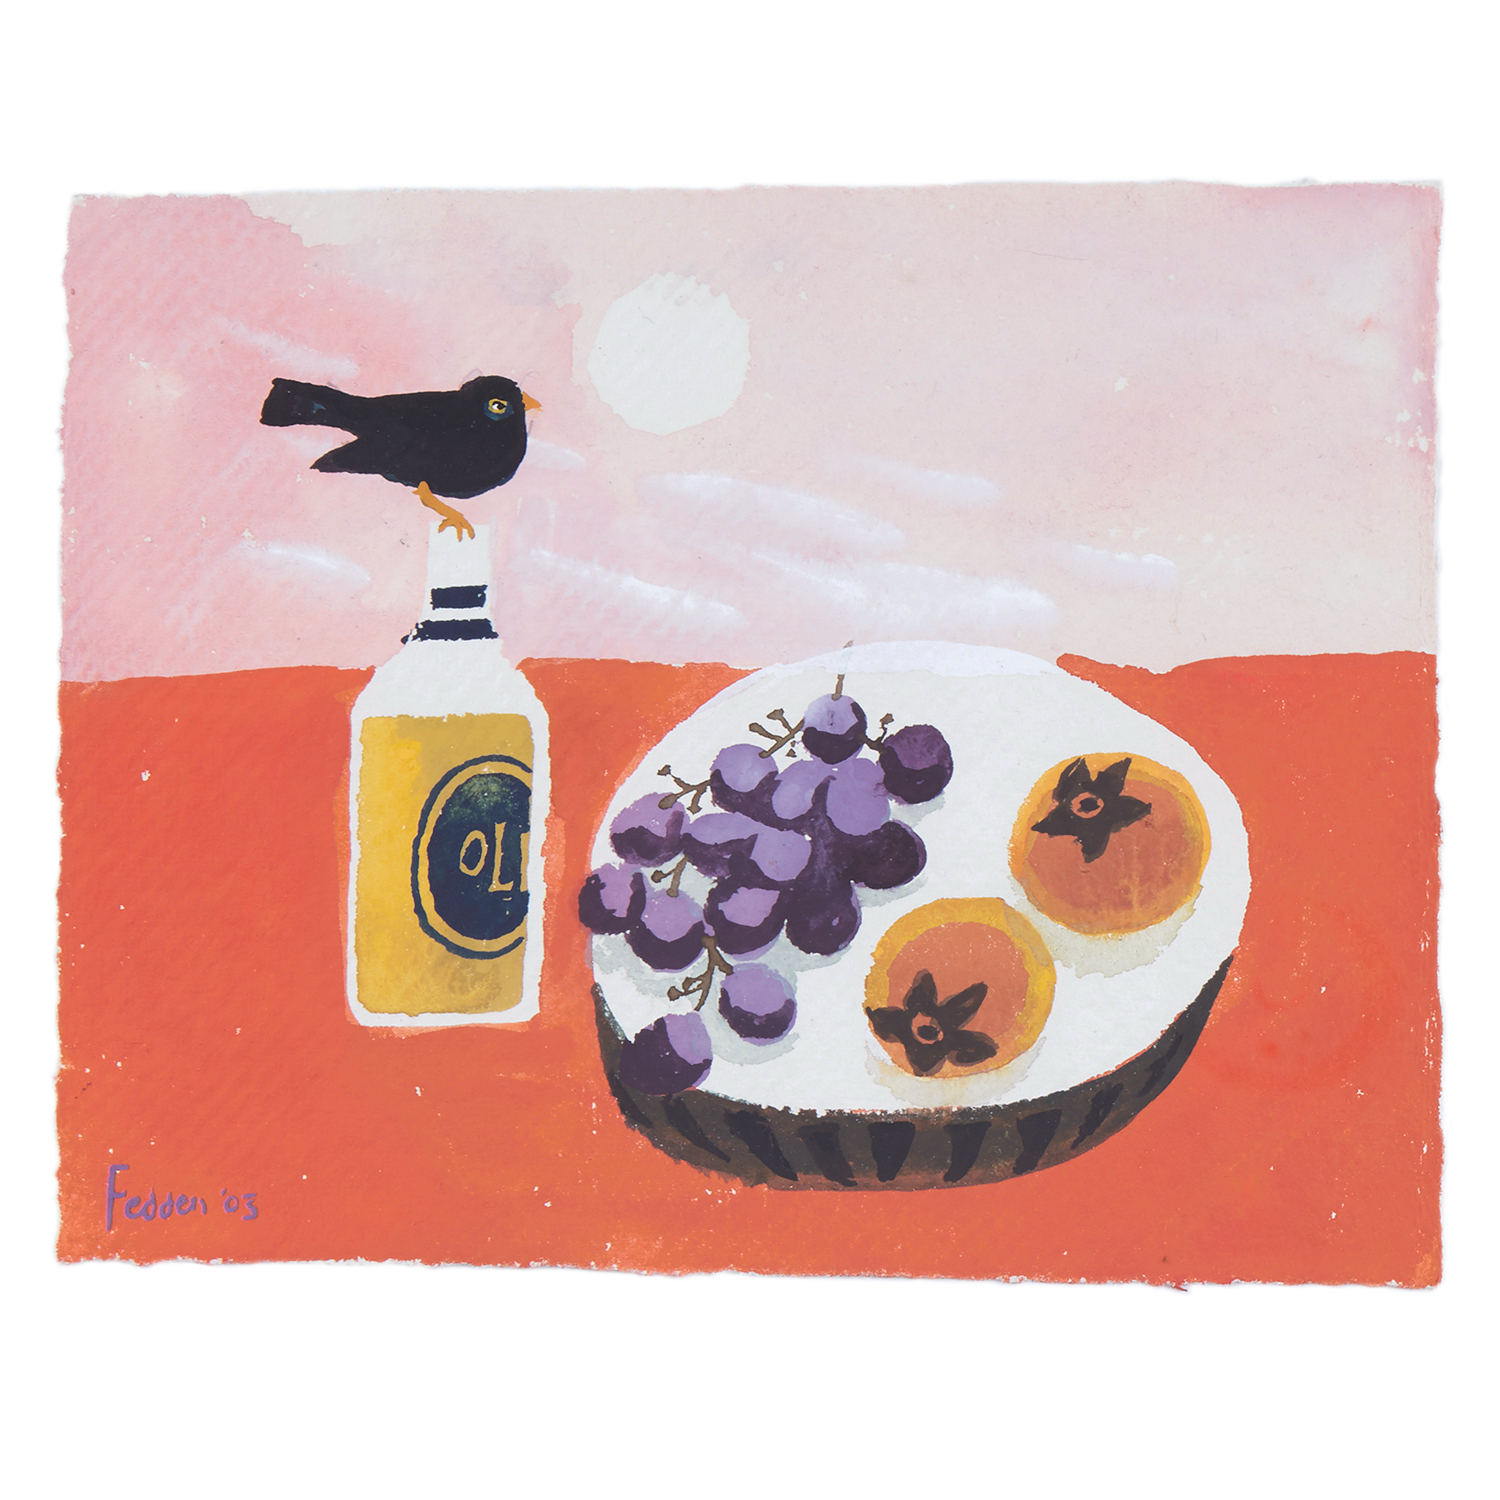 MARY FEDDEN. THE BLACKBIRD. 2003